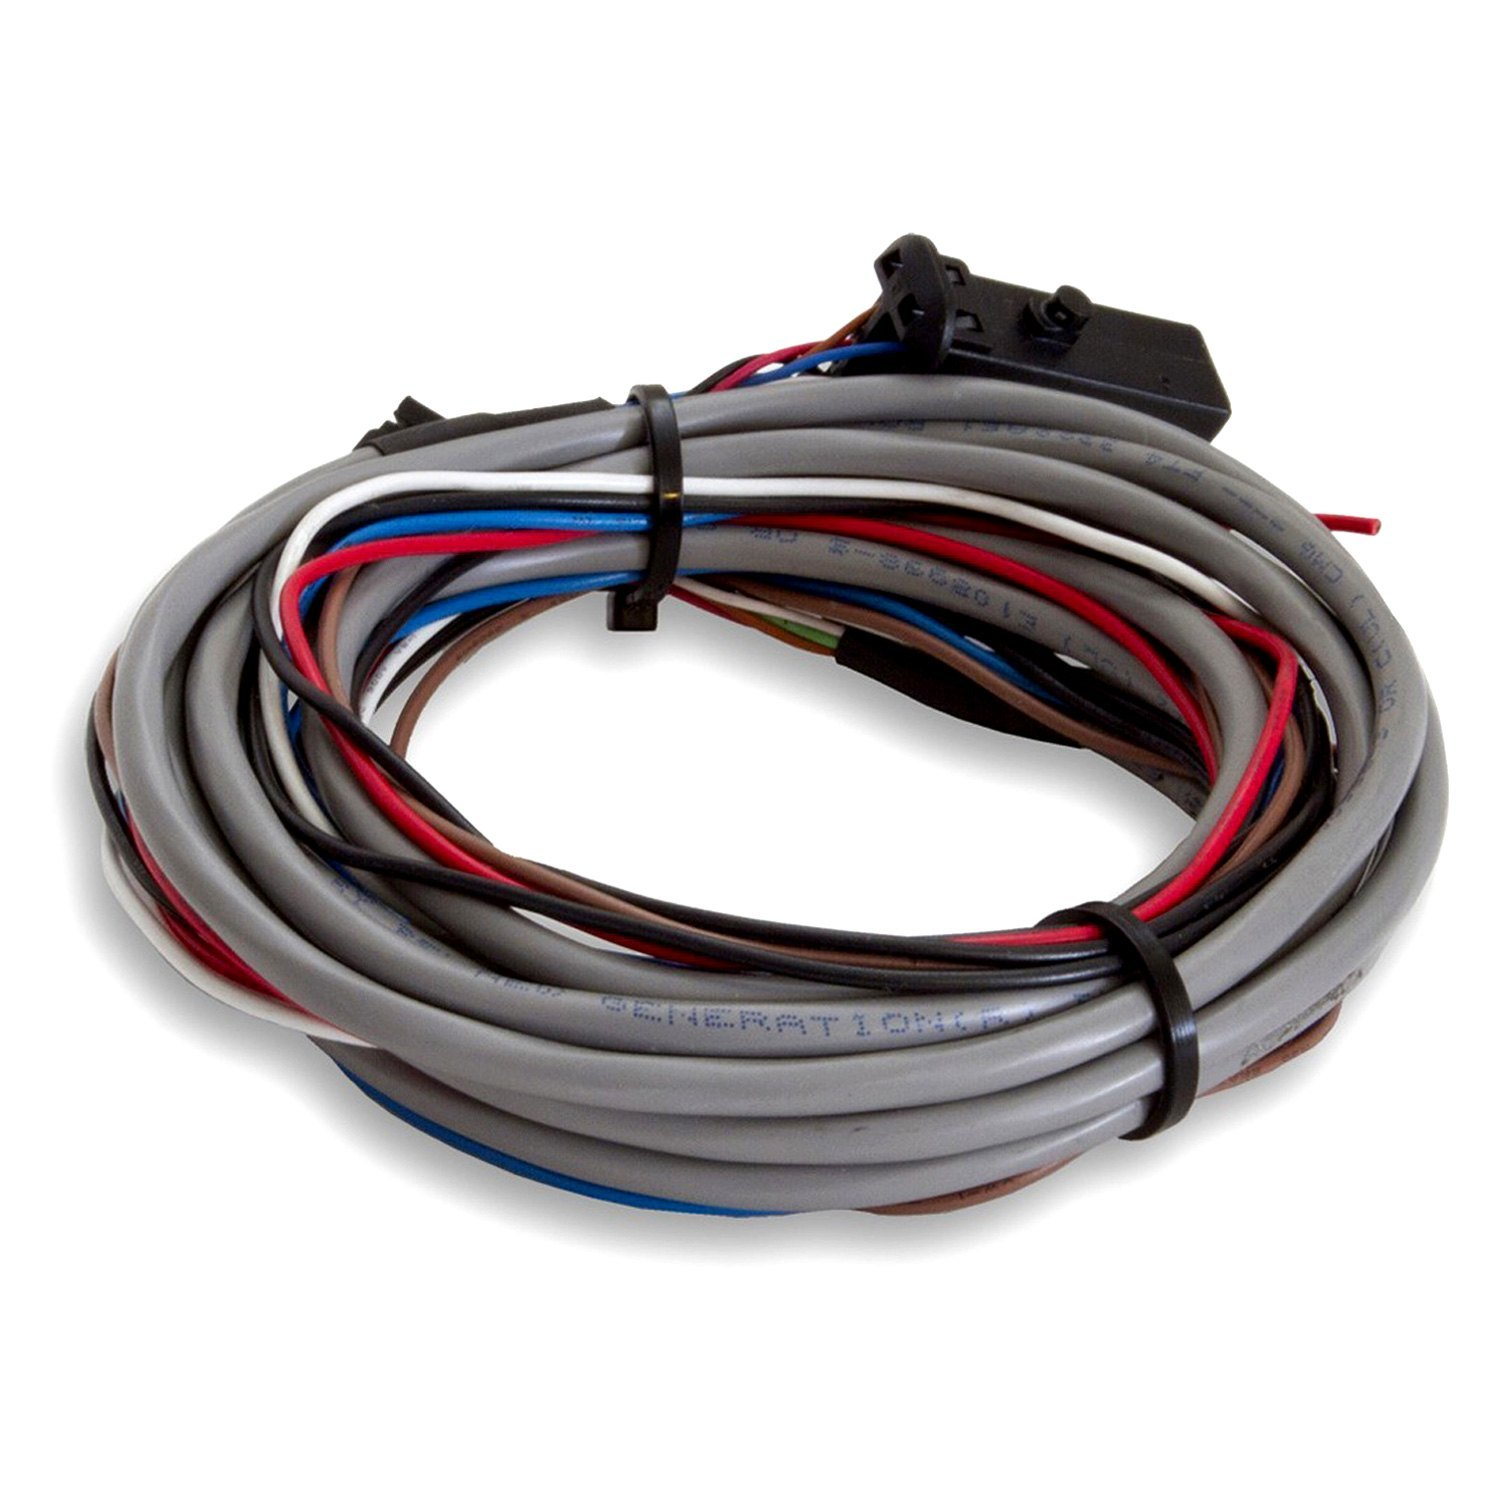 gm automotive wiring harness auto meter® 5232 - wire harness automotive wiring harness materials